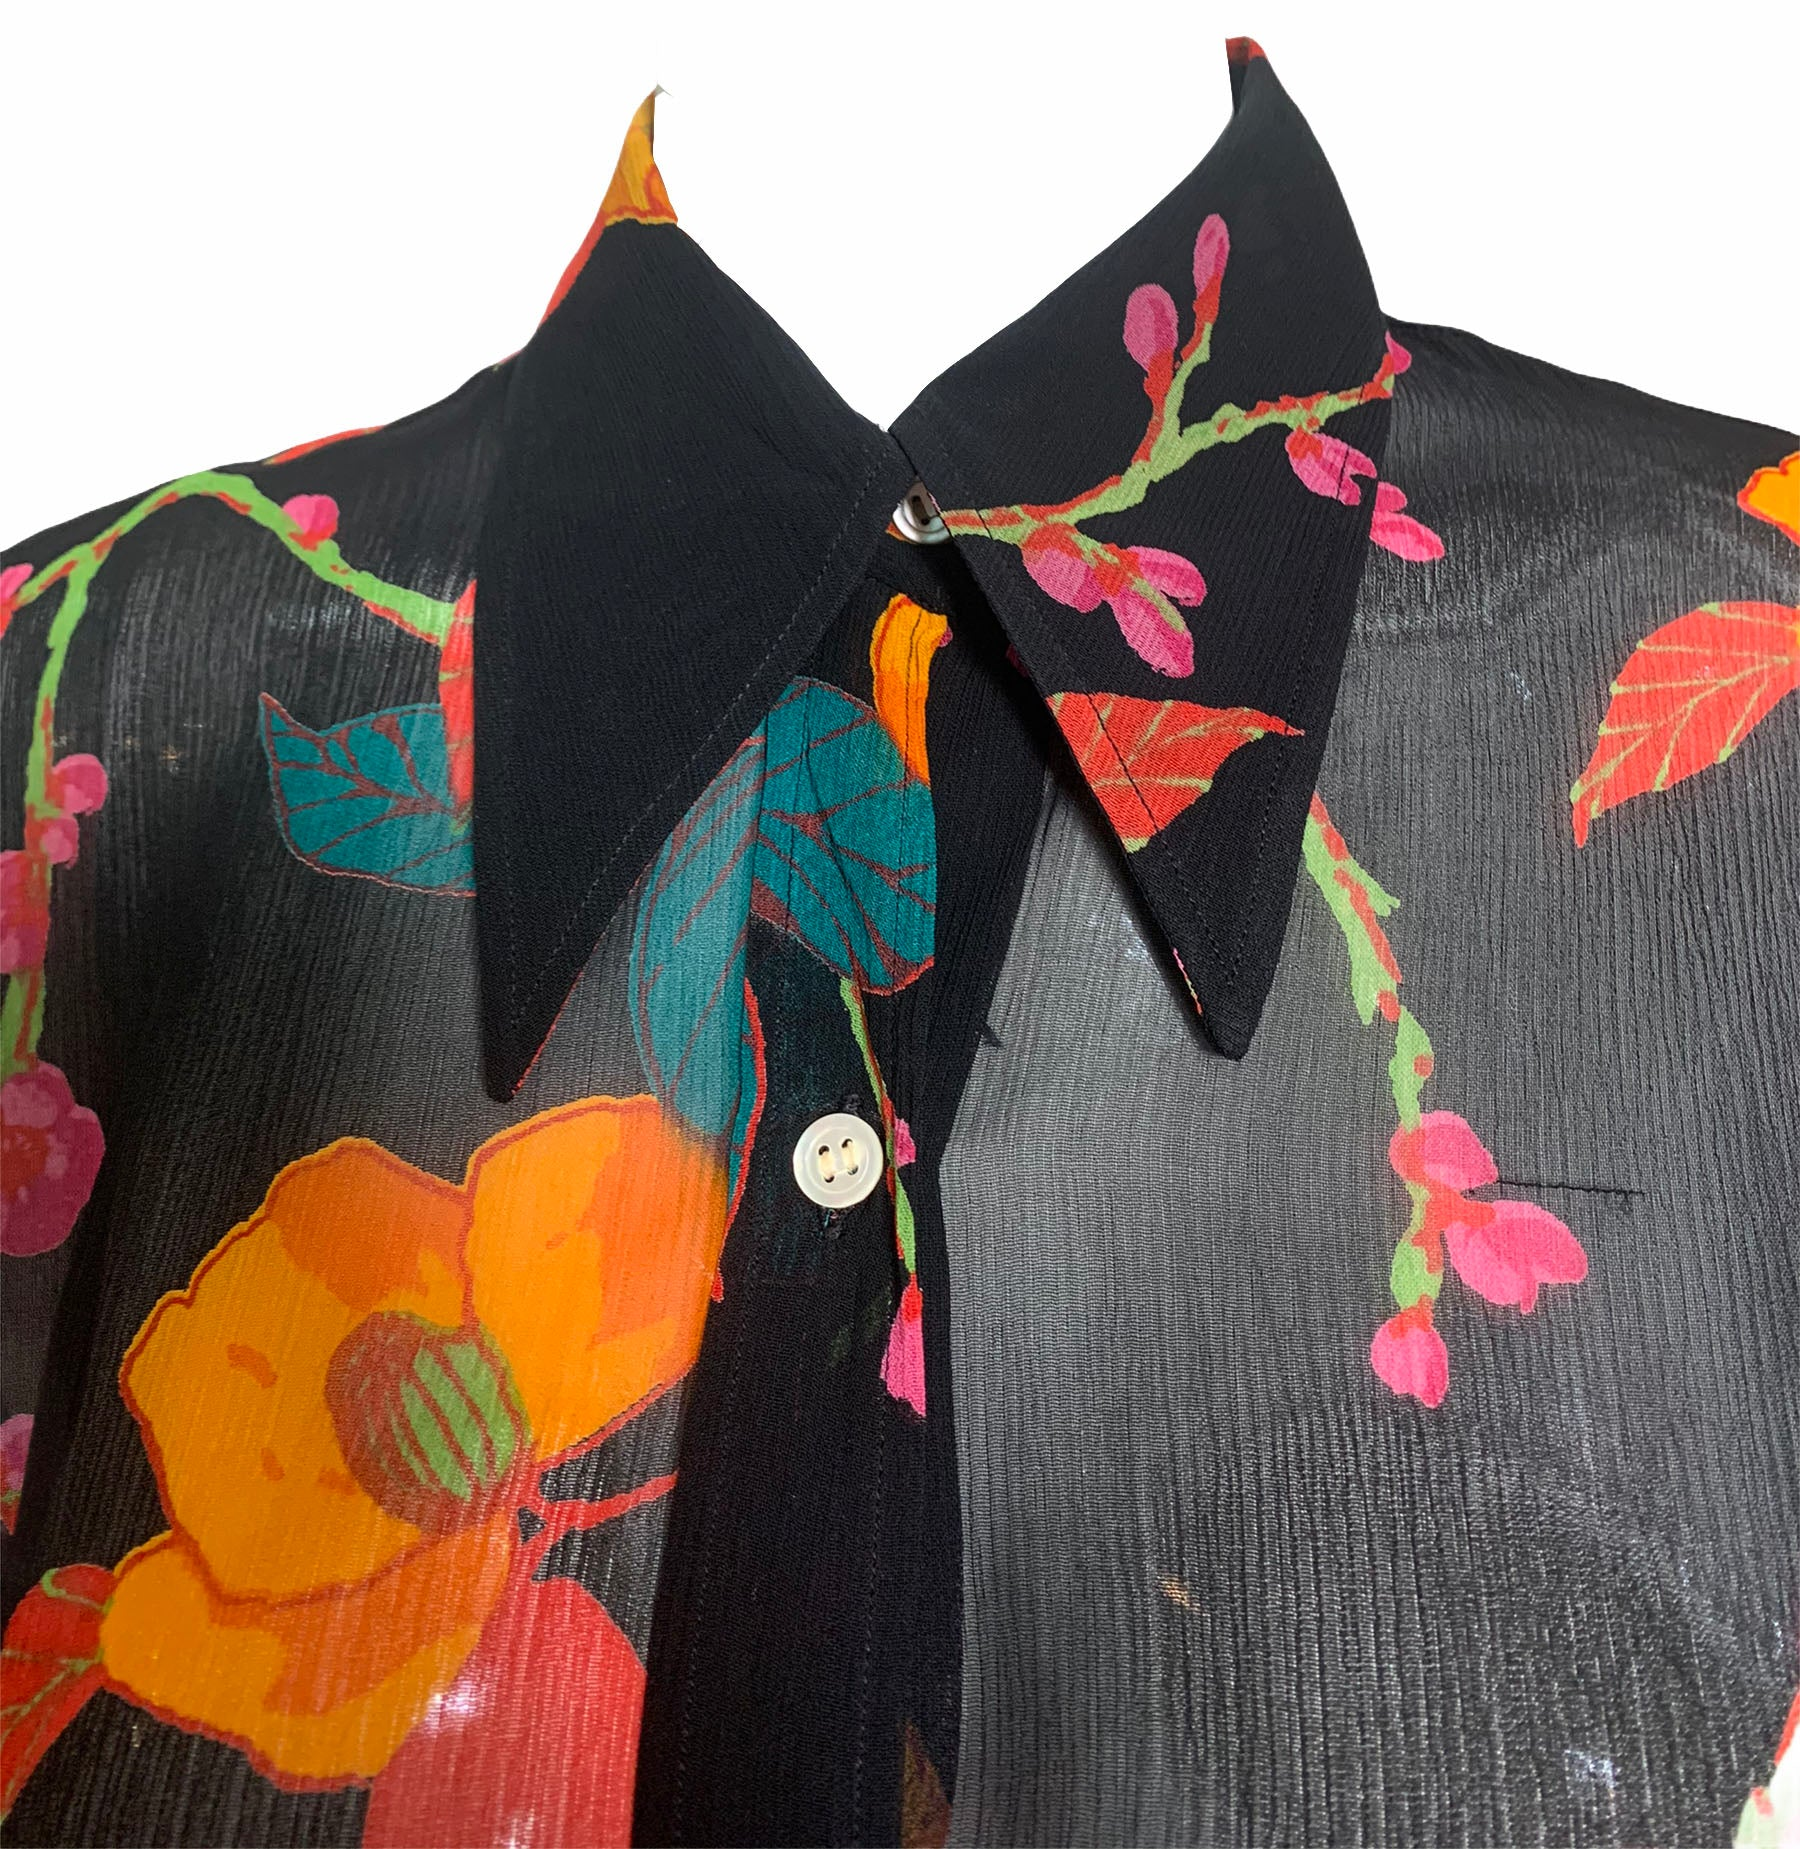 Franck Olivier Black Floral Chiffon Blouse DETAIL 4 of 5